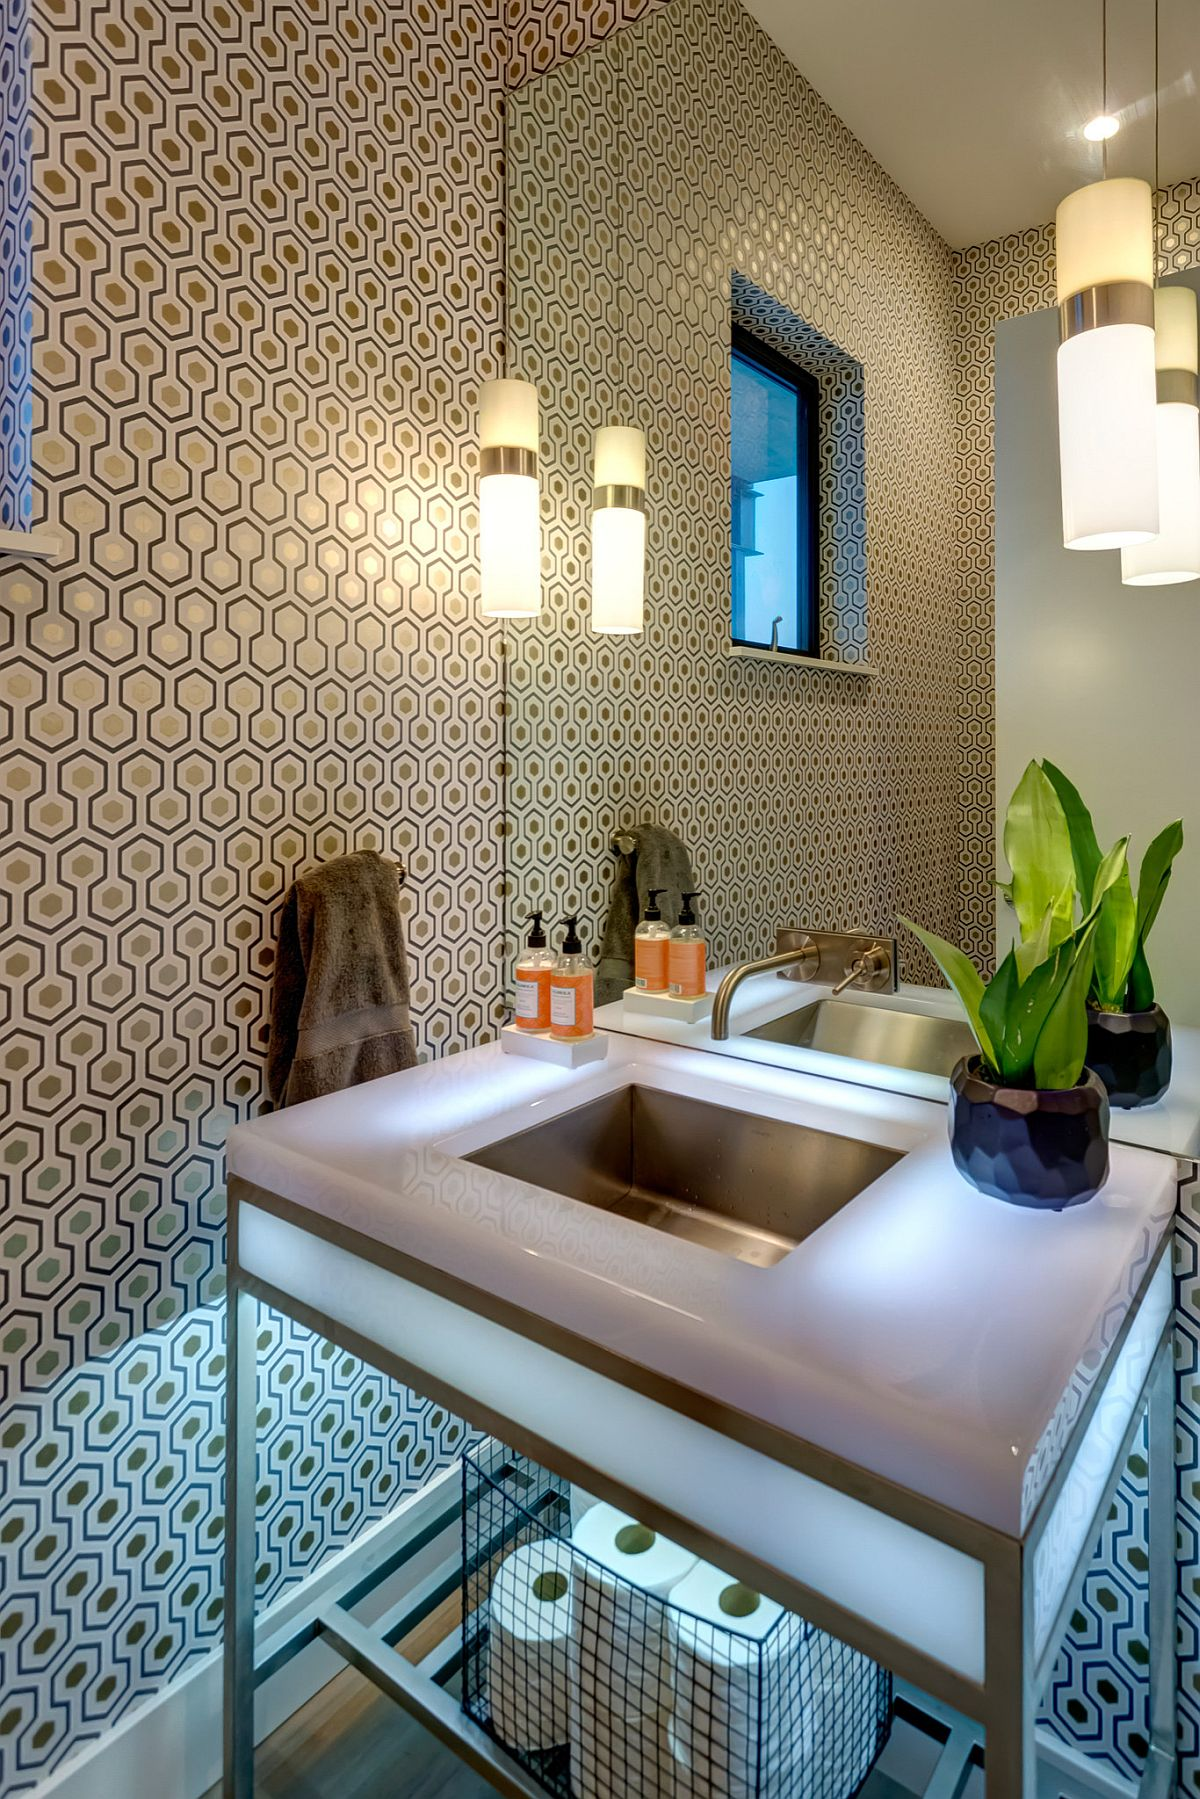 Wallpaper with iconic David Hicks pattern steals the spotlight in this small modern powder room